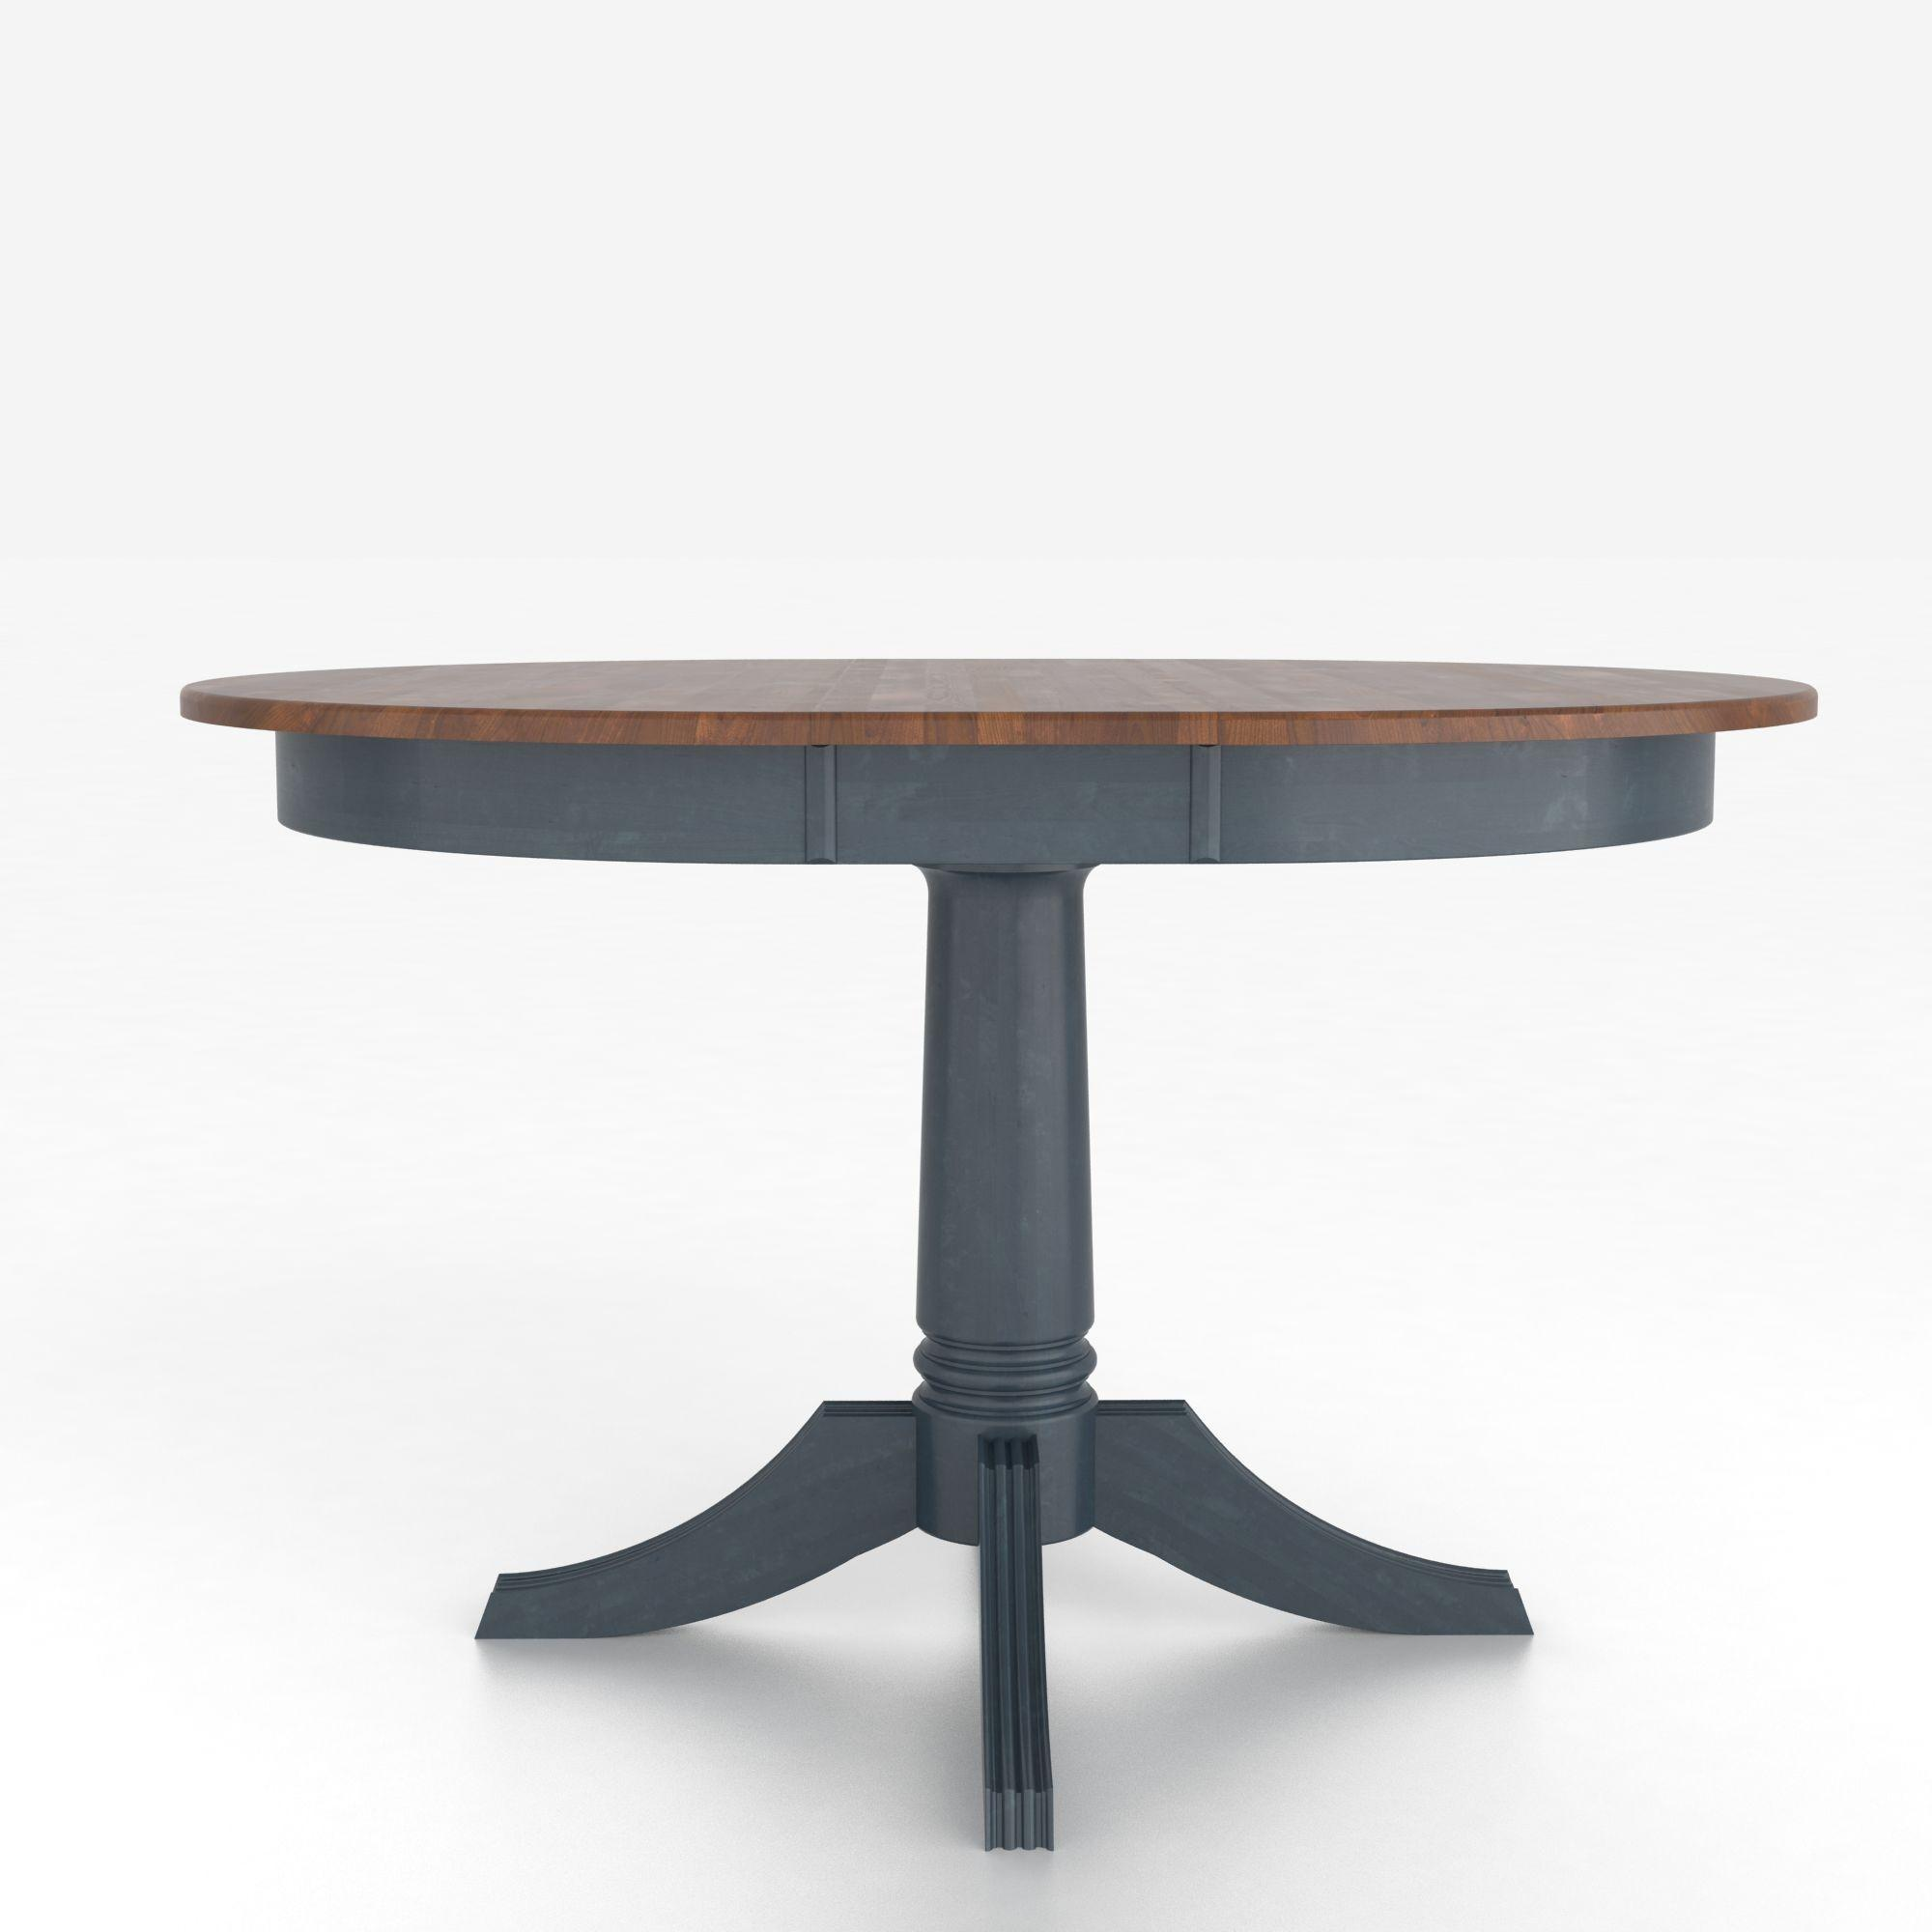 canadel custom dining tables customizable round table with pedestal belfort furniture dining. Black Bedroom Furniture Sets. Home Design Ideas